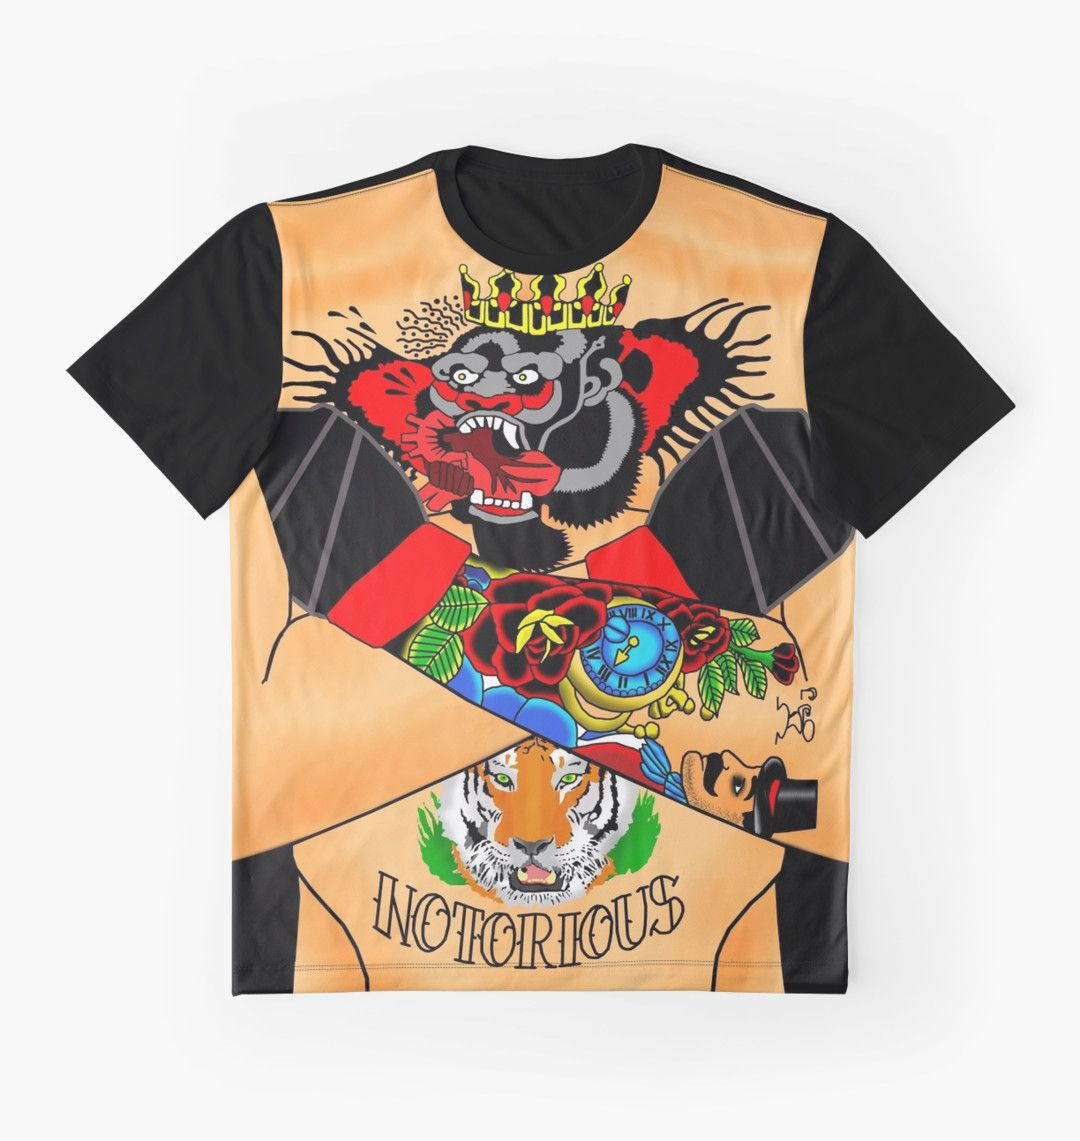 Conor arm tattoo shirt graphic t shirts by rolorega for Mcgregor tattoo shirt